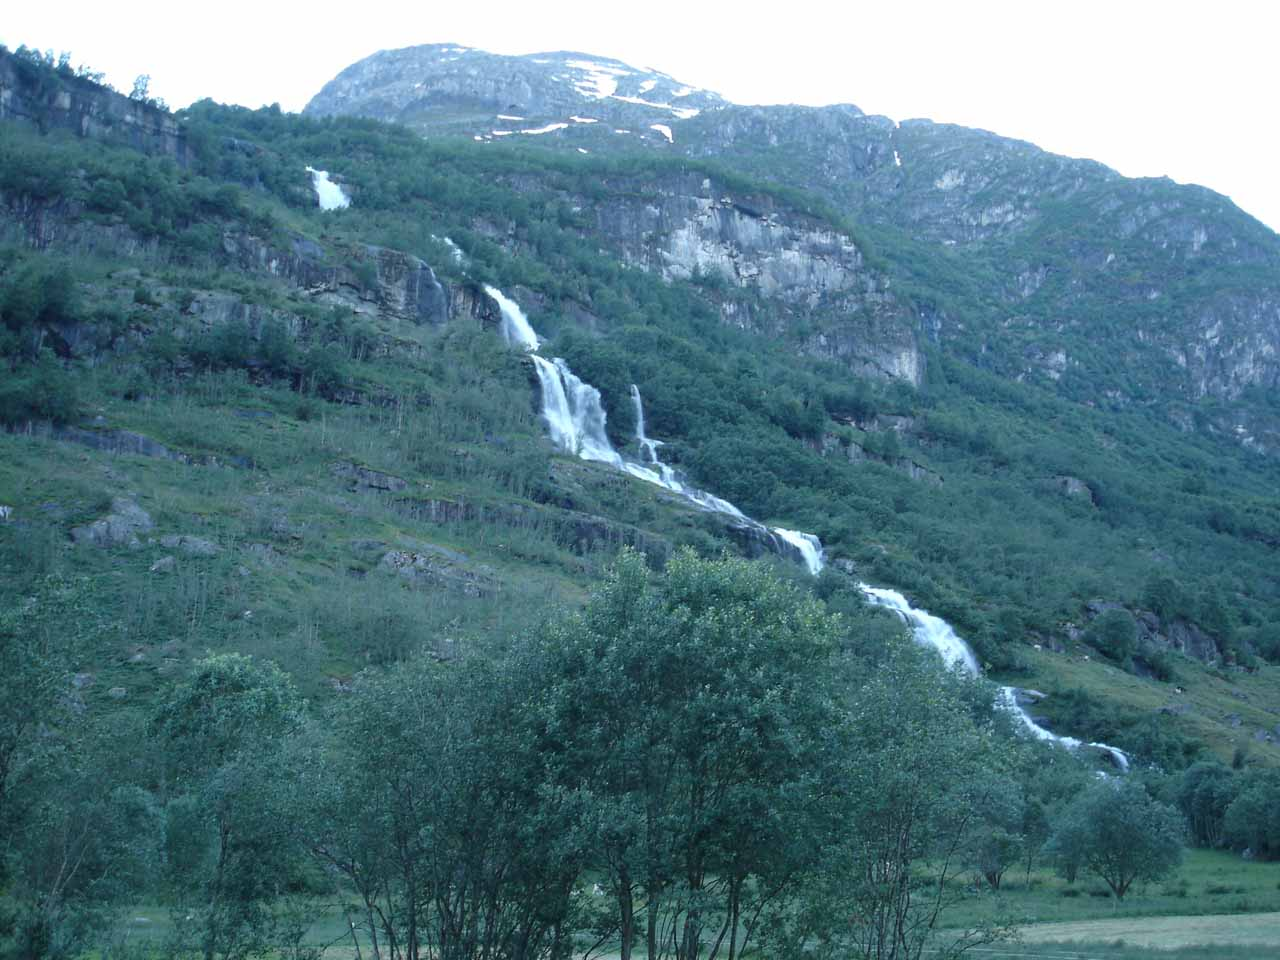 This long and thick cascading waterfall was the one I thought was called Melkevollfossen